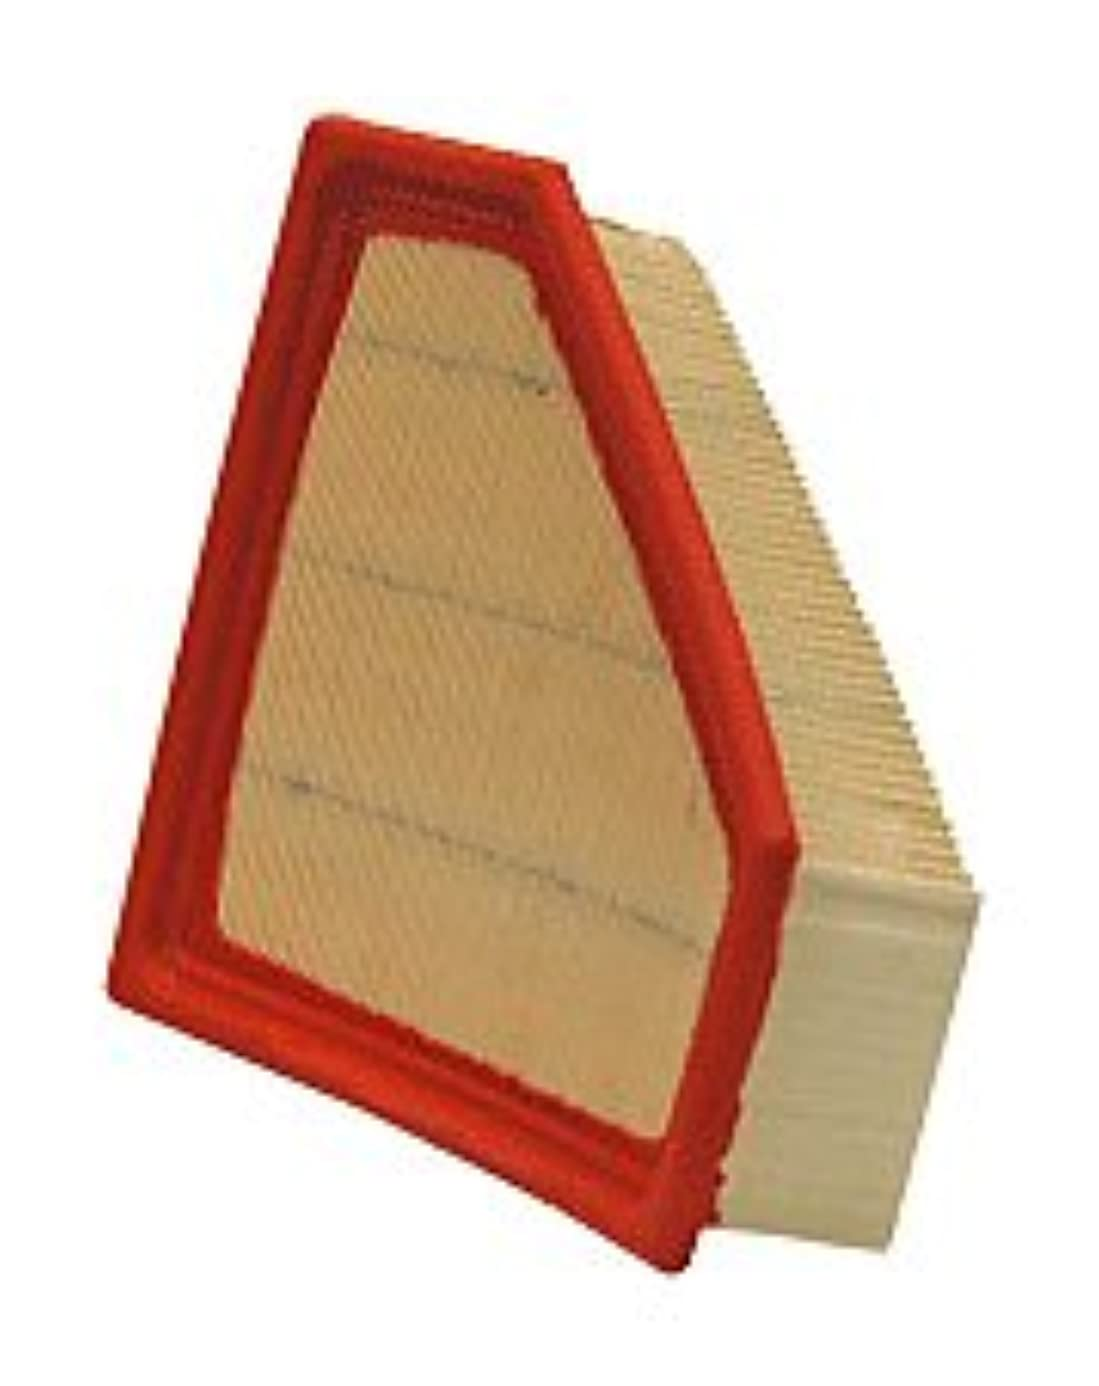 WIX Filters - 49890 Air Filter Panel, Pack of 1 qfi3876038